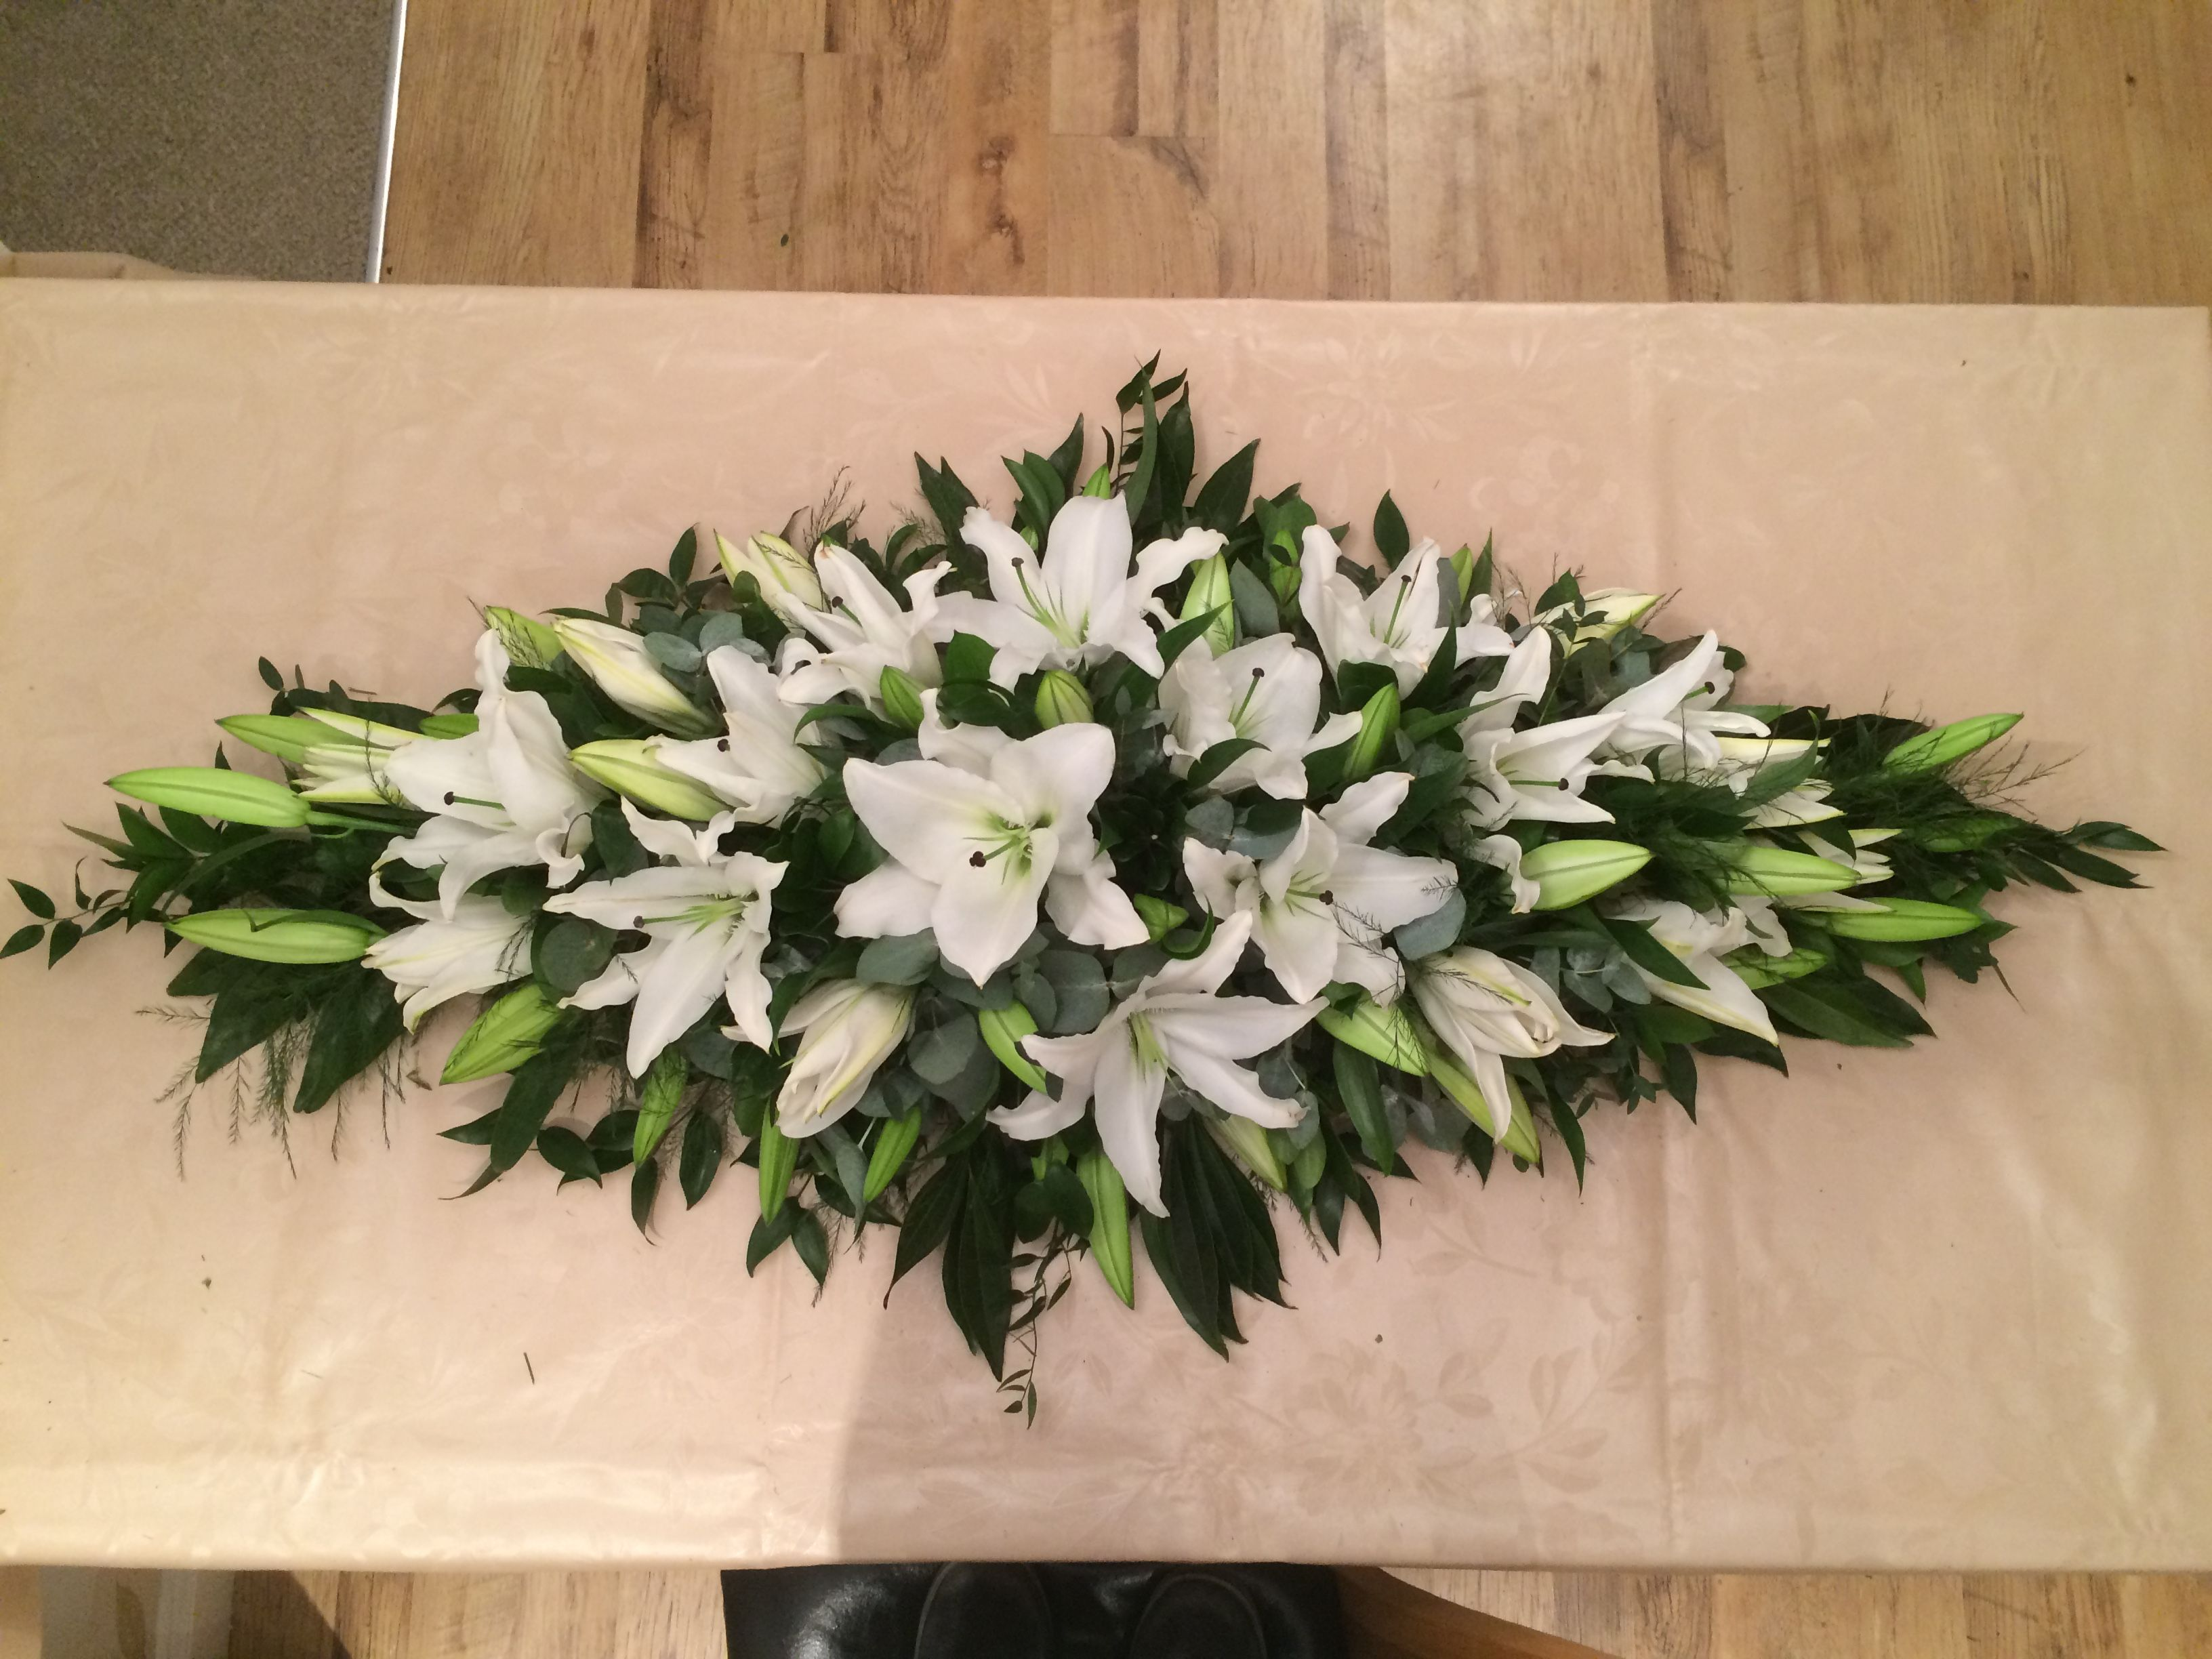 White lily 4 funeral coffin spray created by willow house flowers white lily 4 funeral coffin spray created by willow house flowers aylesbury florist izmirmasajfo